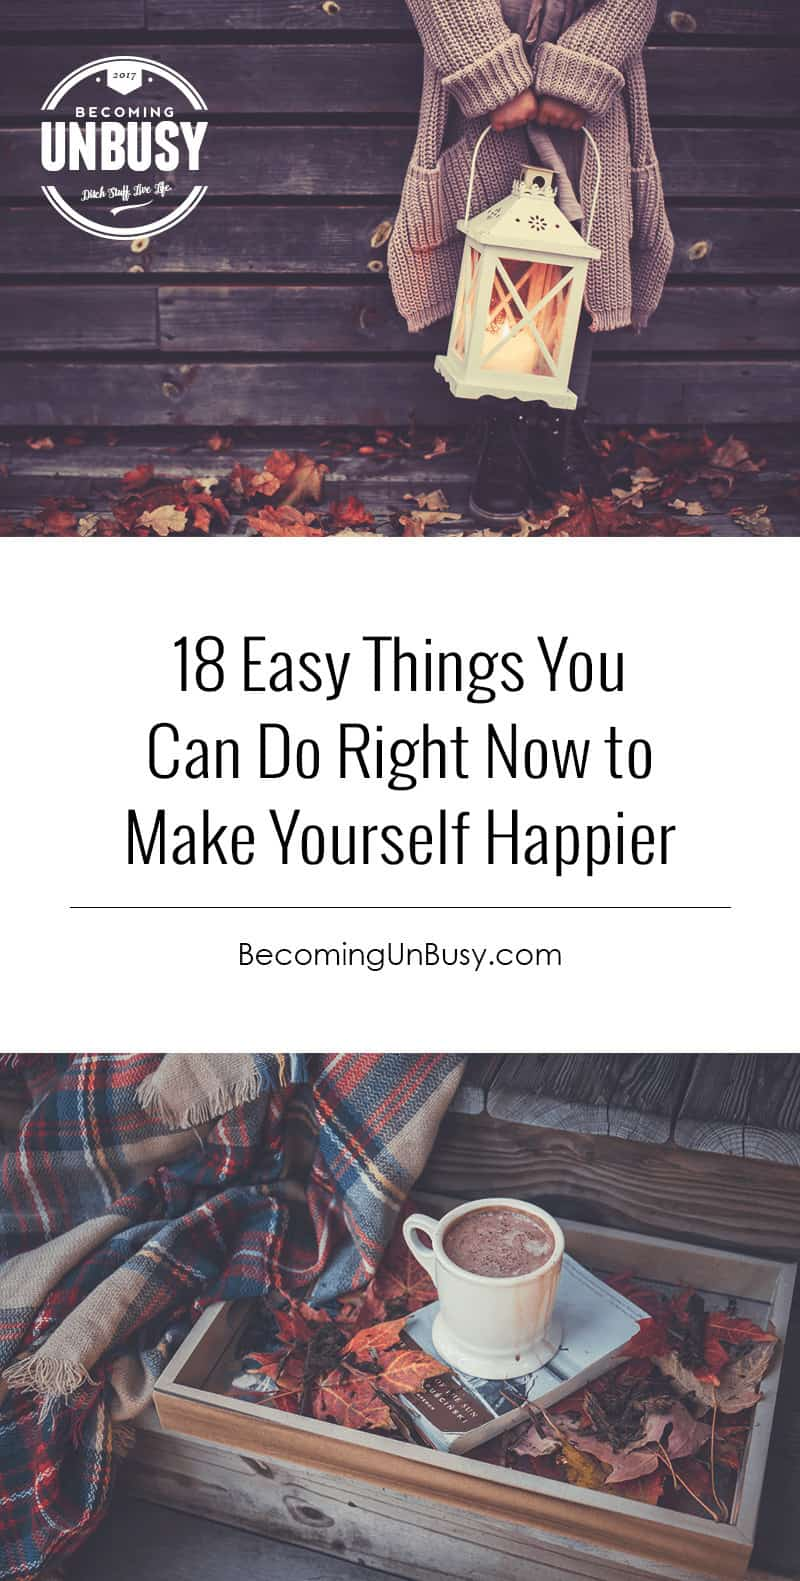 Feeling out of sorts as the long nights of autumn arrive? Check out this list of 18 easy things you can do TODAY to make yourself happier. *love this happy list and loving this Becoming UnBusy website